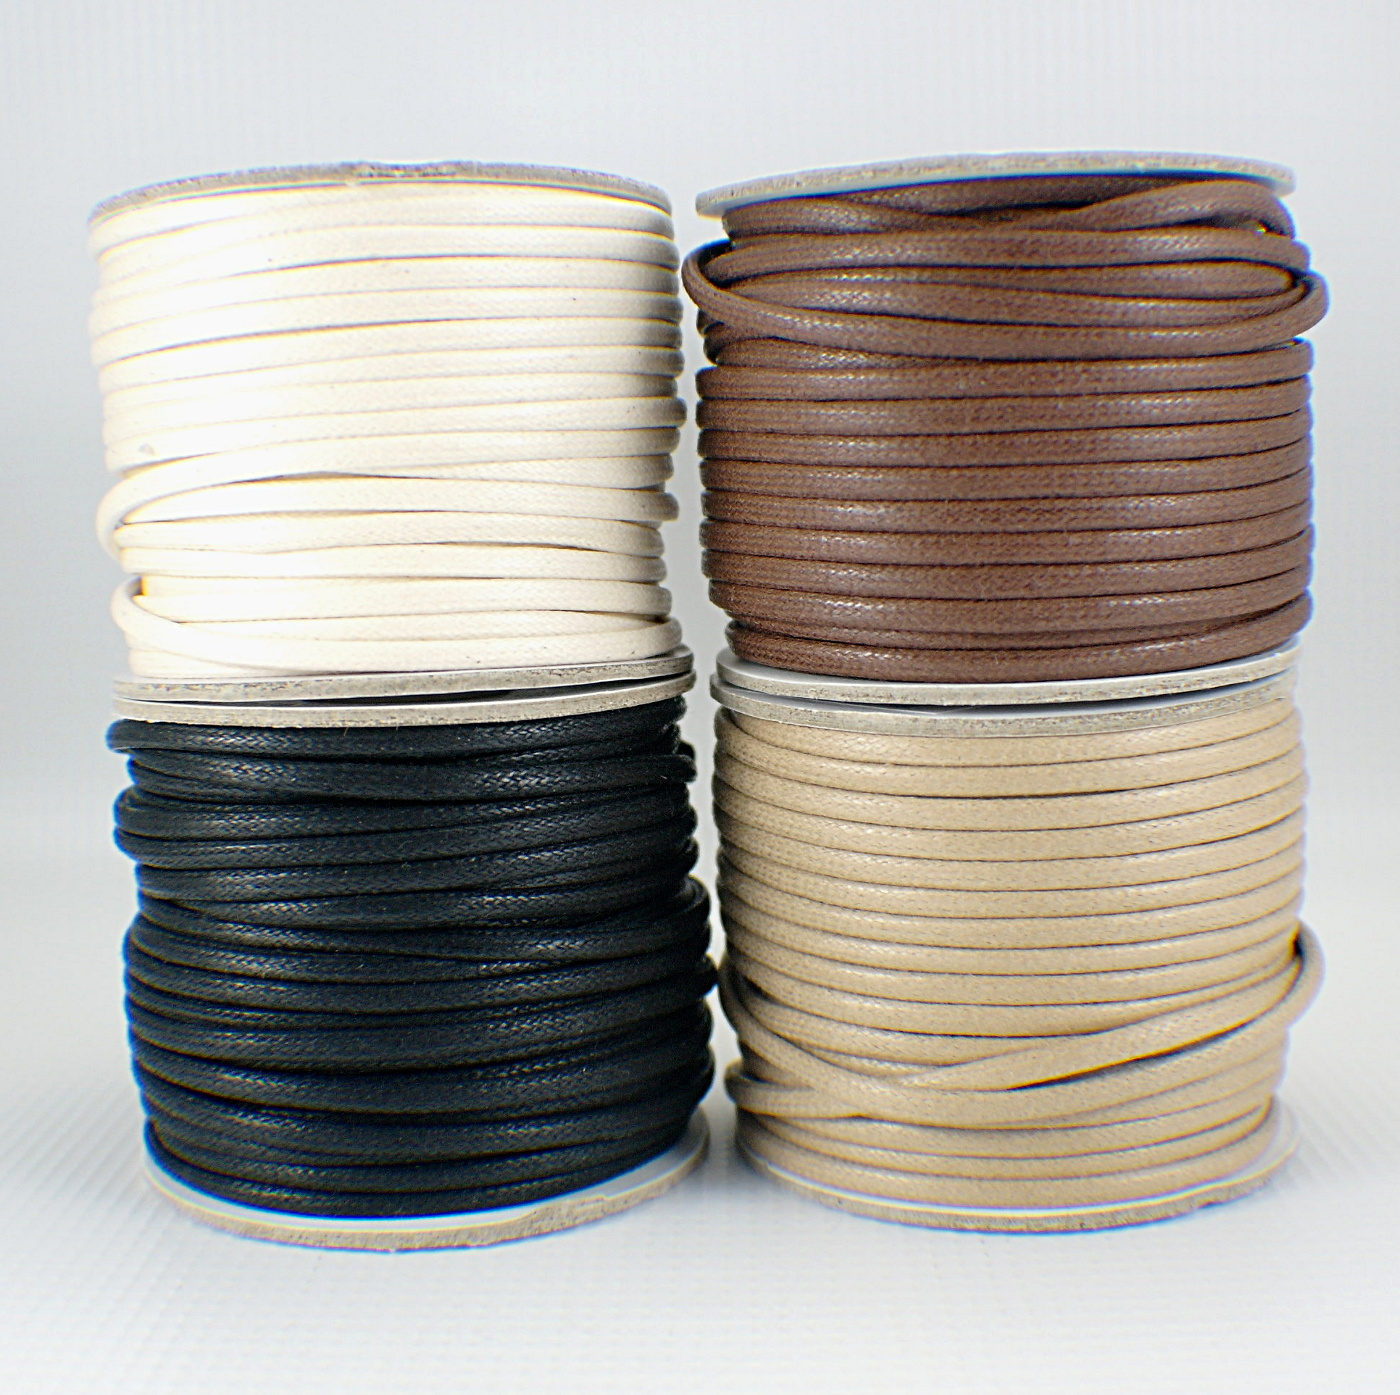 3mm waxed cotton cord